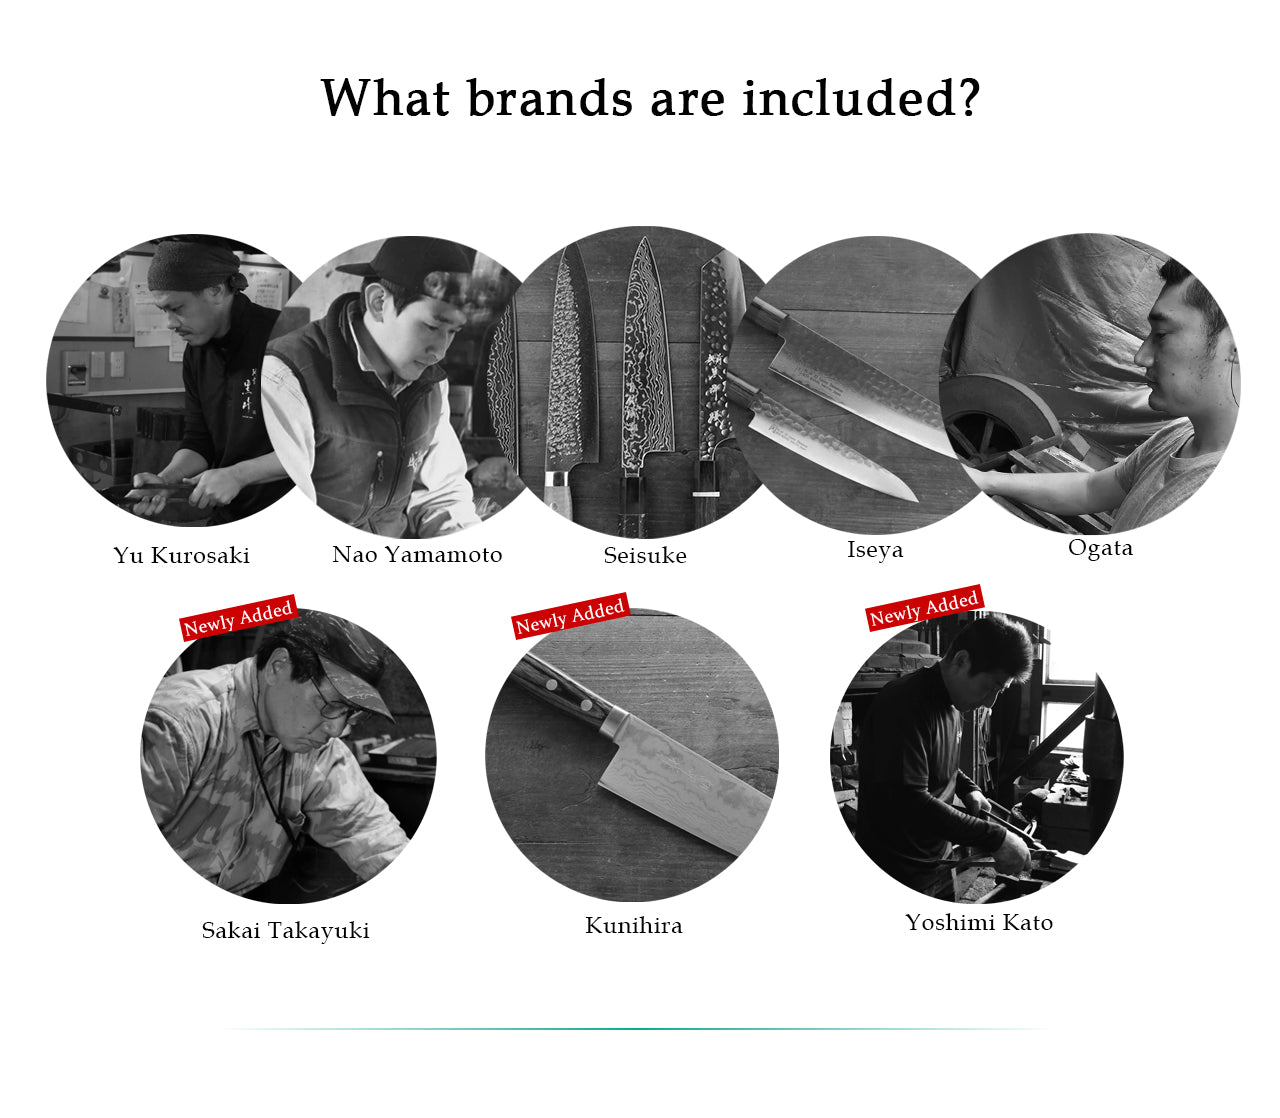 What brands are included?